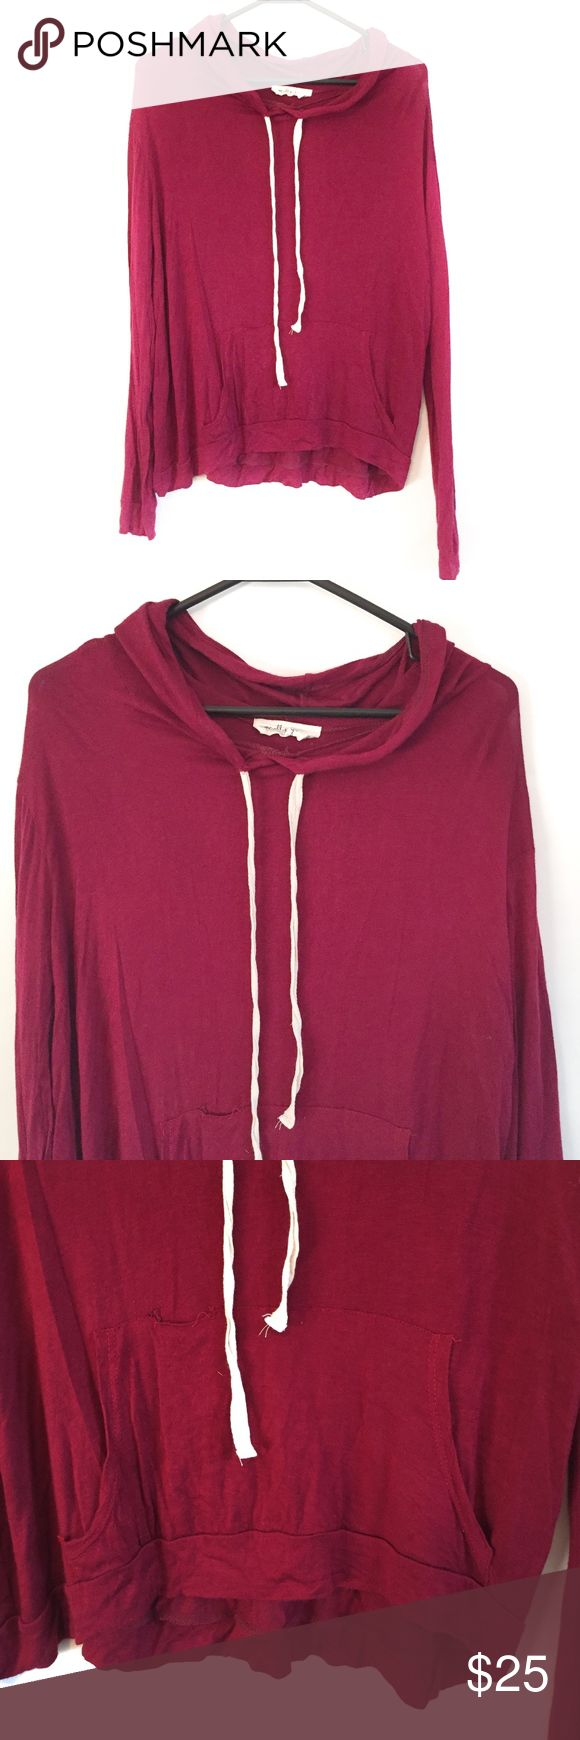 Molly Green Maroon Pullover Molly Green Maroon Pullover. It is in perfect condition except for the small hole in the pouch on the stomach (Picture four). It is a loose weight hoodie that lays on you as a casual hoodie. Not bulky, so perfect for layering. The strings can adjust the tightness of the hood.  Measurements (inches):     ~Bust: 22     ~Shoulder: 16.5     ~Length: 27  *all measurements are taken with the item laying flat*   I am always open to offers.  Bundle your likes for a…